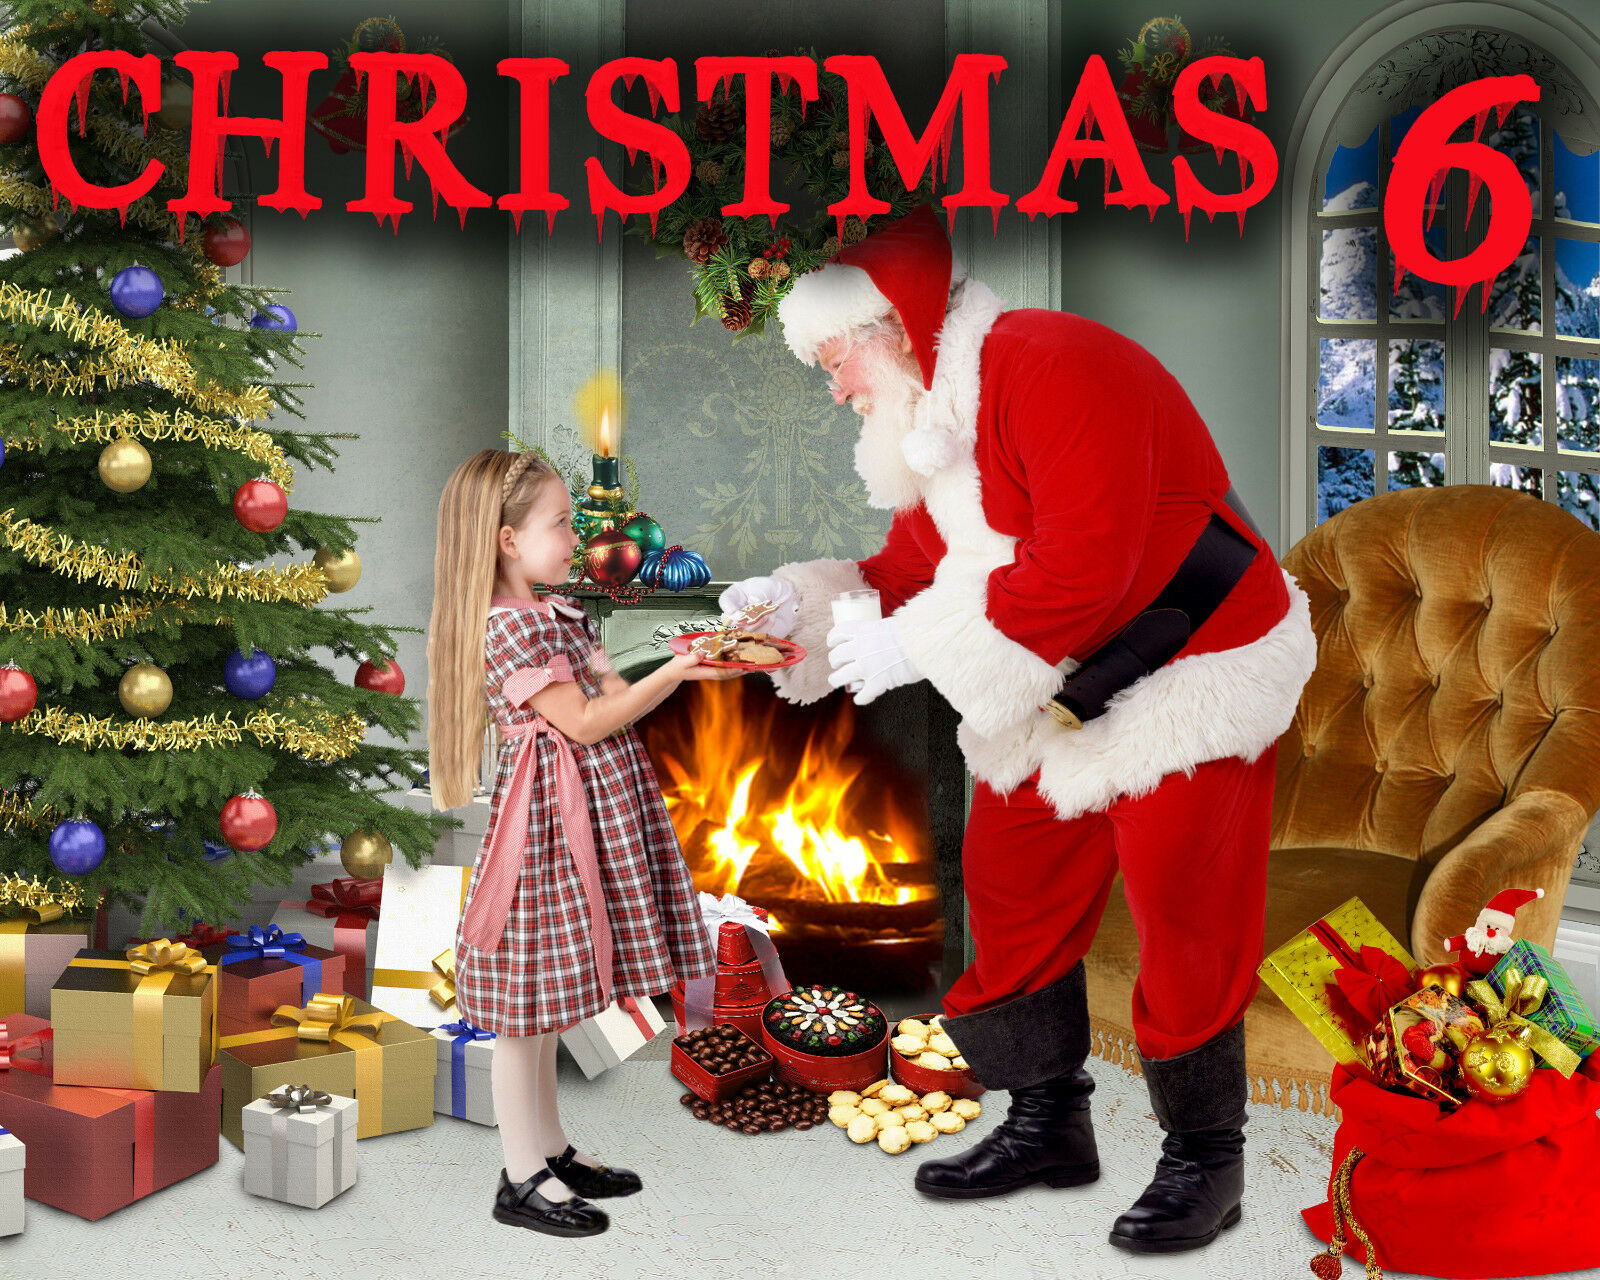 ch6 christmas holiday new year digital backgrounds backdrops template prop photo 1 of 1free shipping